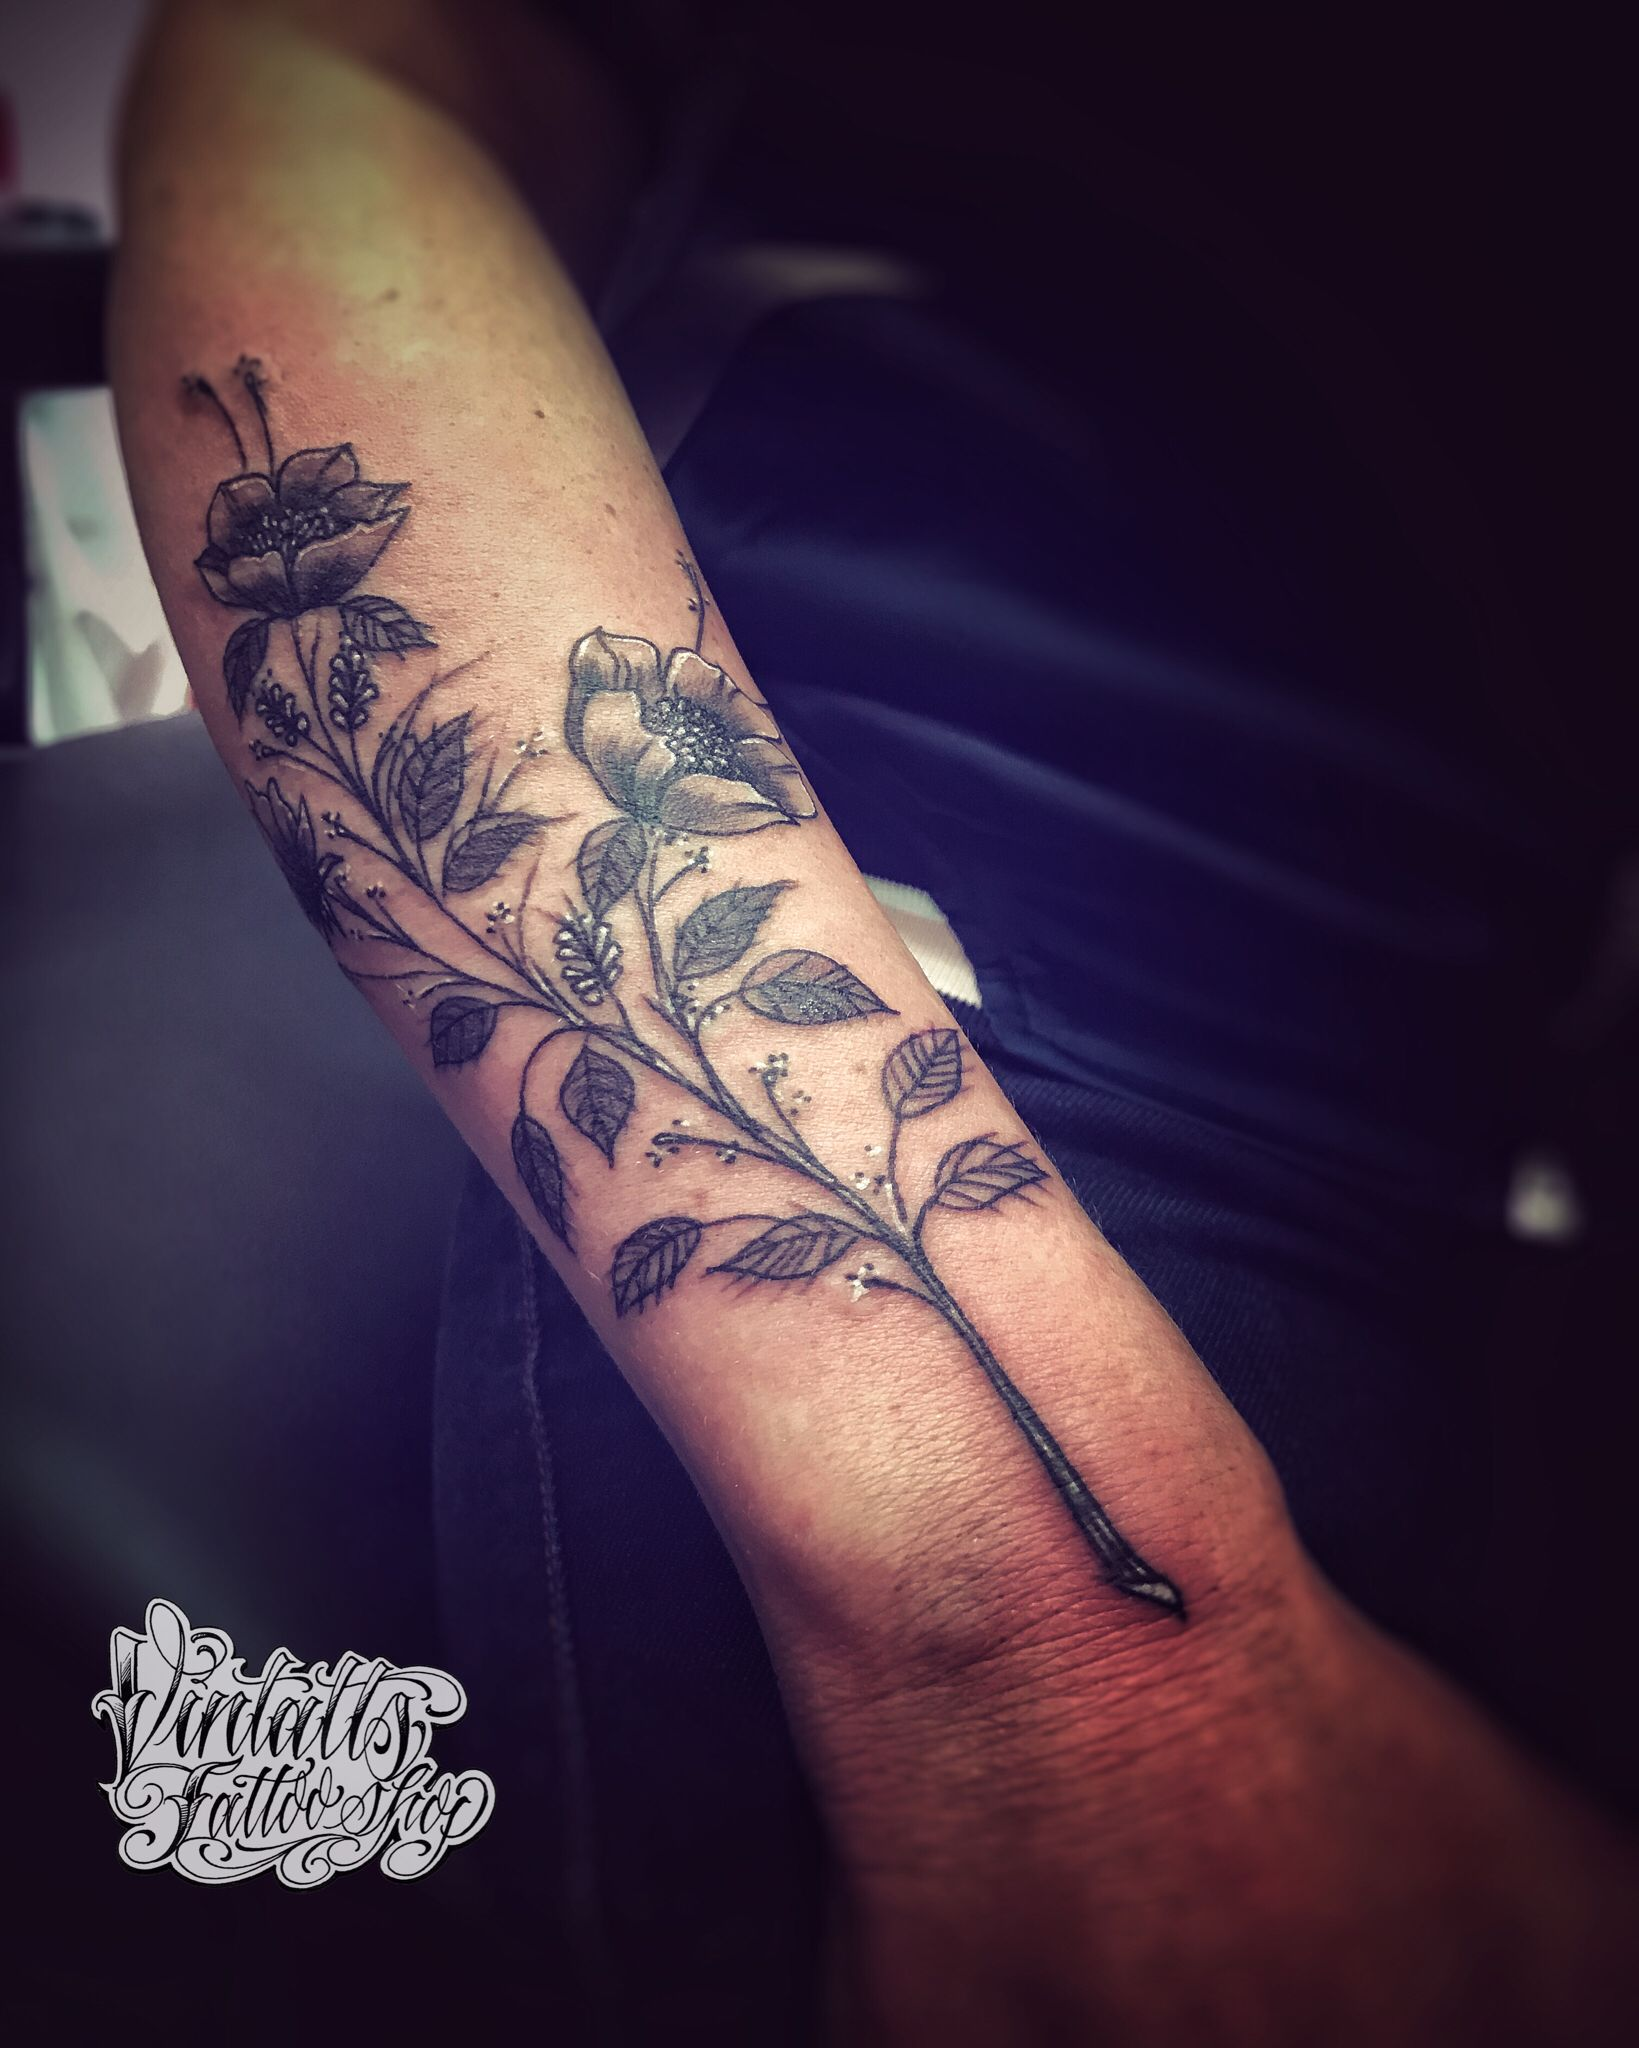 Flowers Black Tattoo Work Black Tattoos Tattoo Shop Tattoos